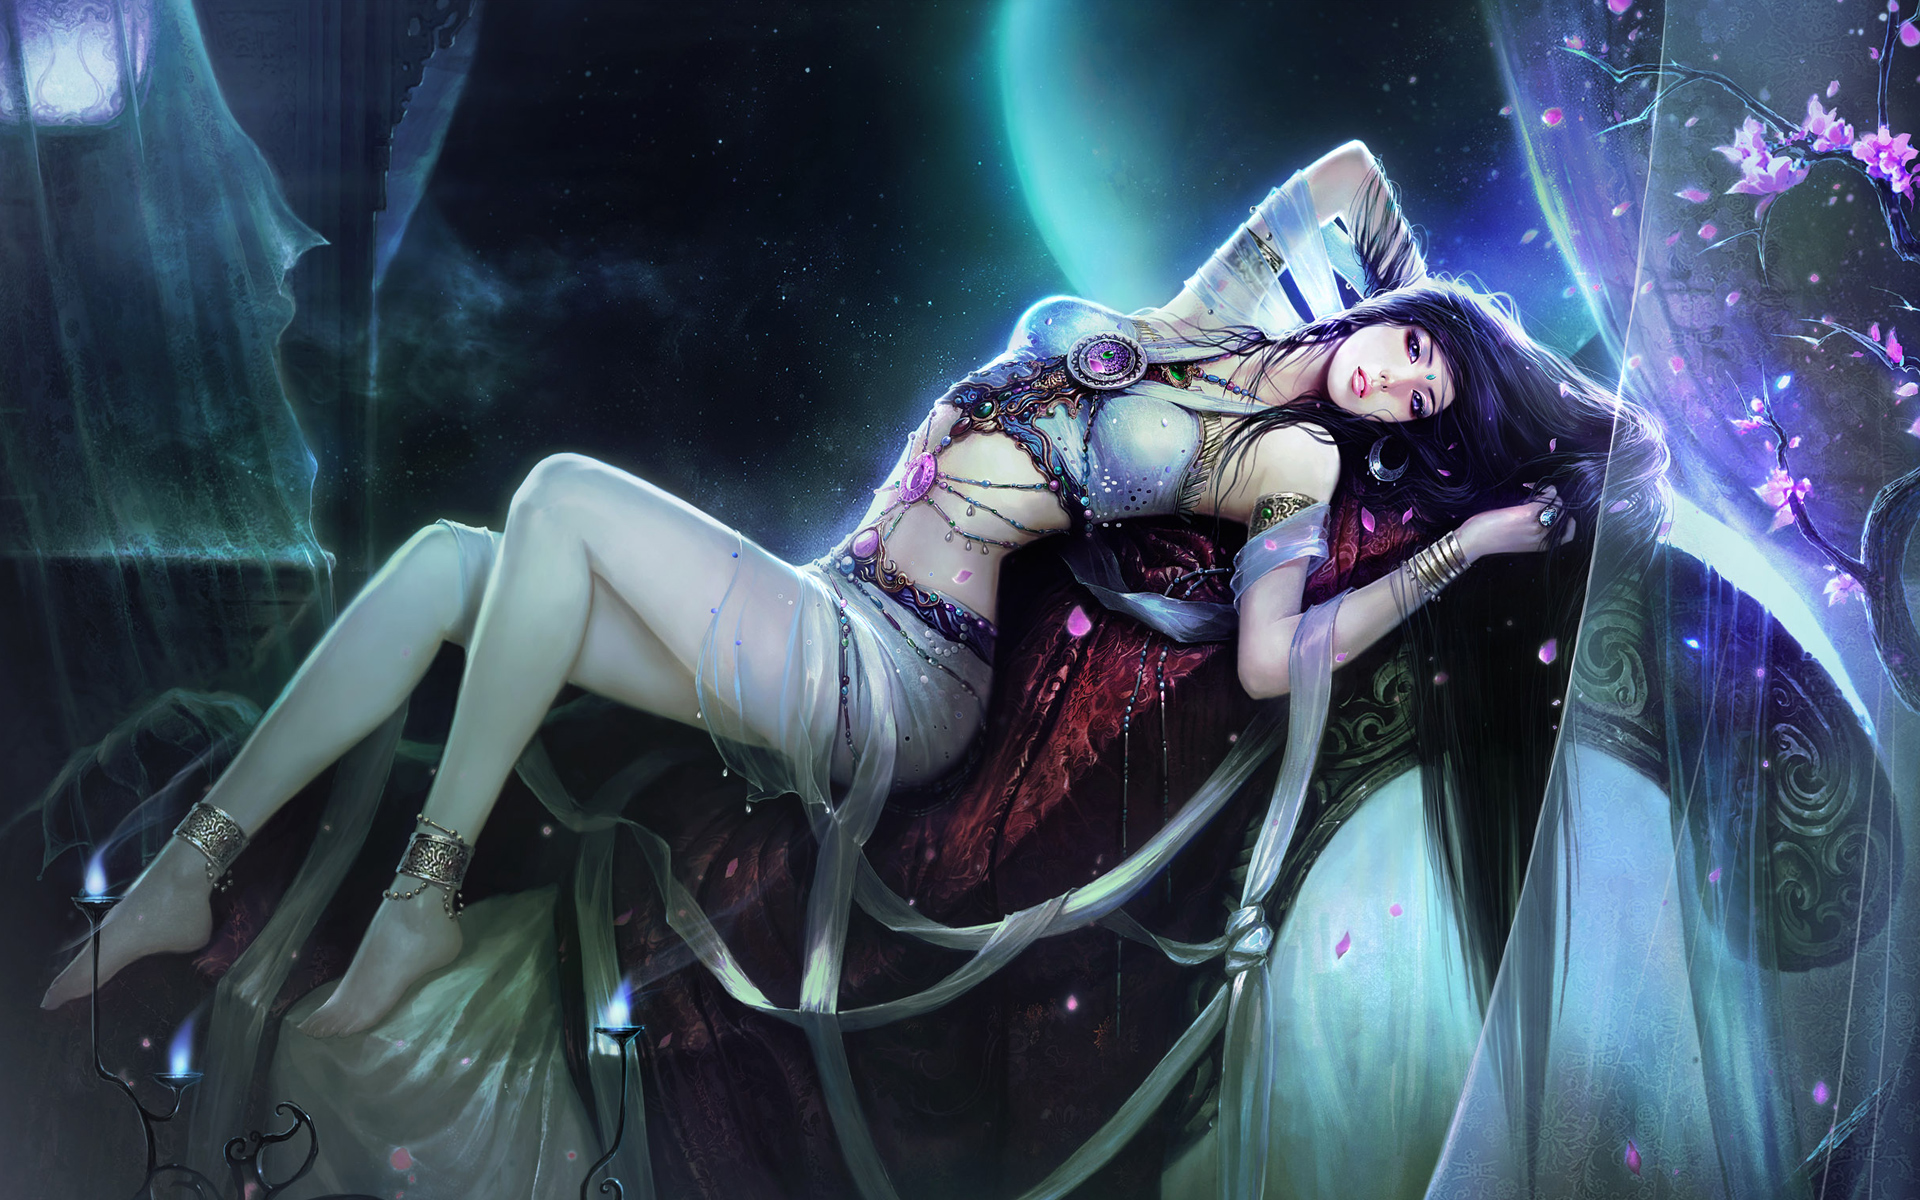 Stunning Hd Fantasy Wallpapers: Beautiful HD Anime Wallpaper